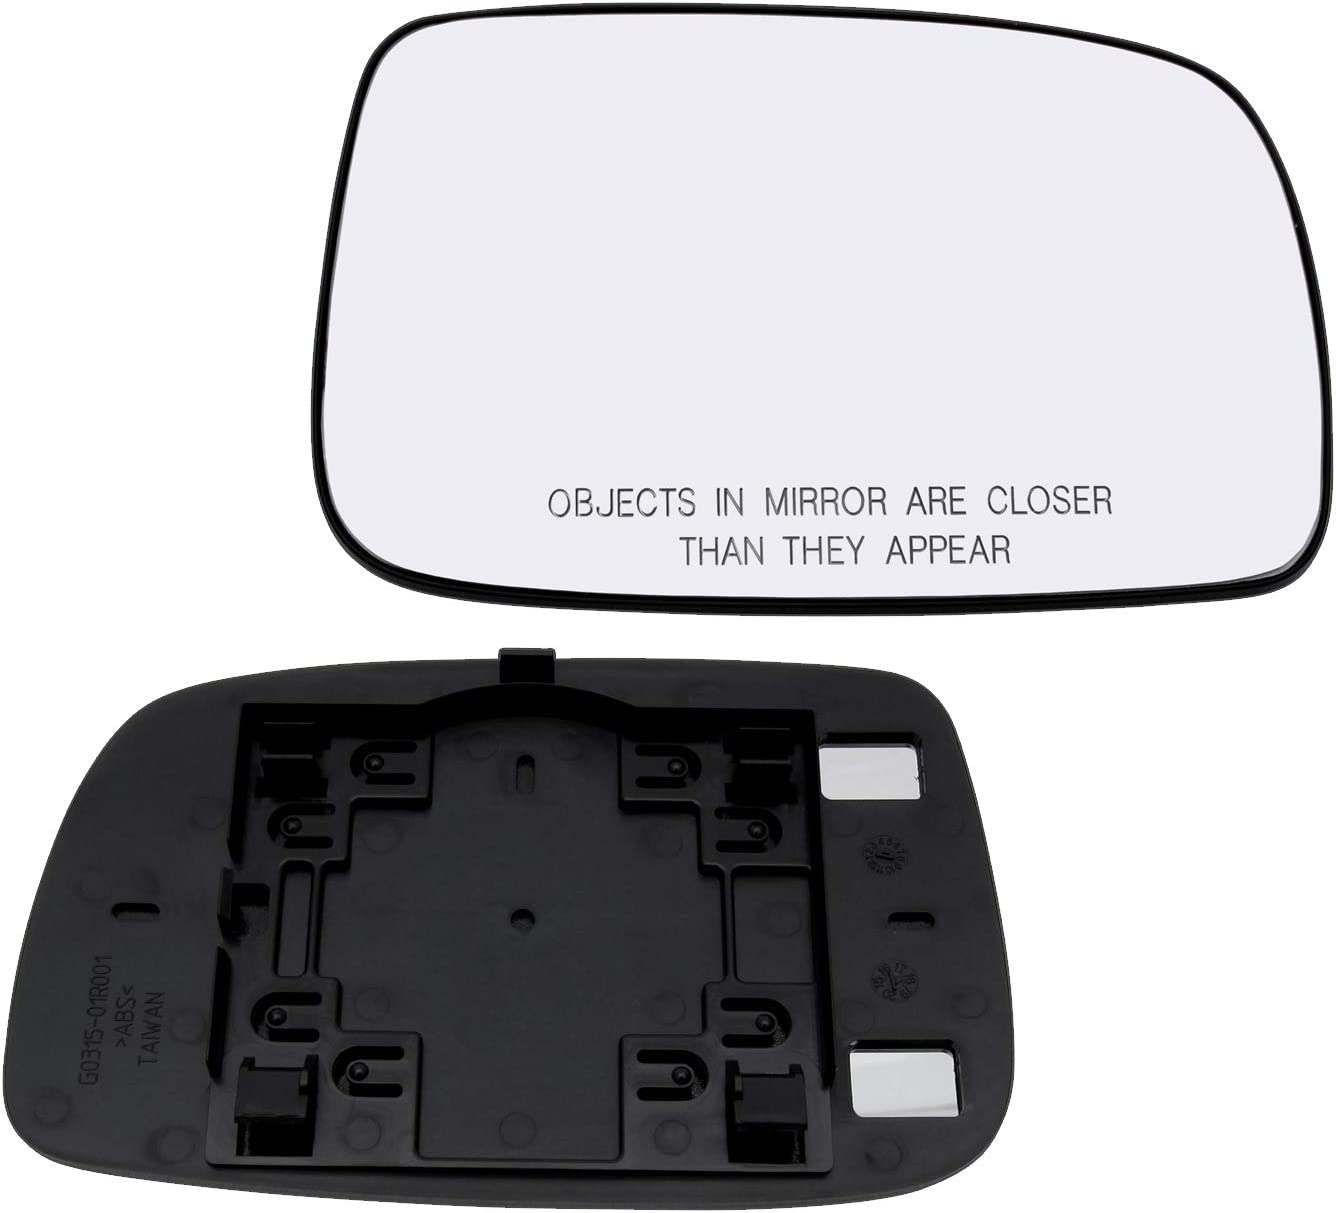 New Replacement Driver Side Mirror Glass W Backing Compatible With 2007-2012 Toyota Camry Sold By Rugged TUFF